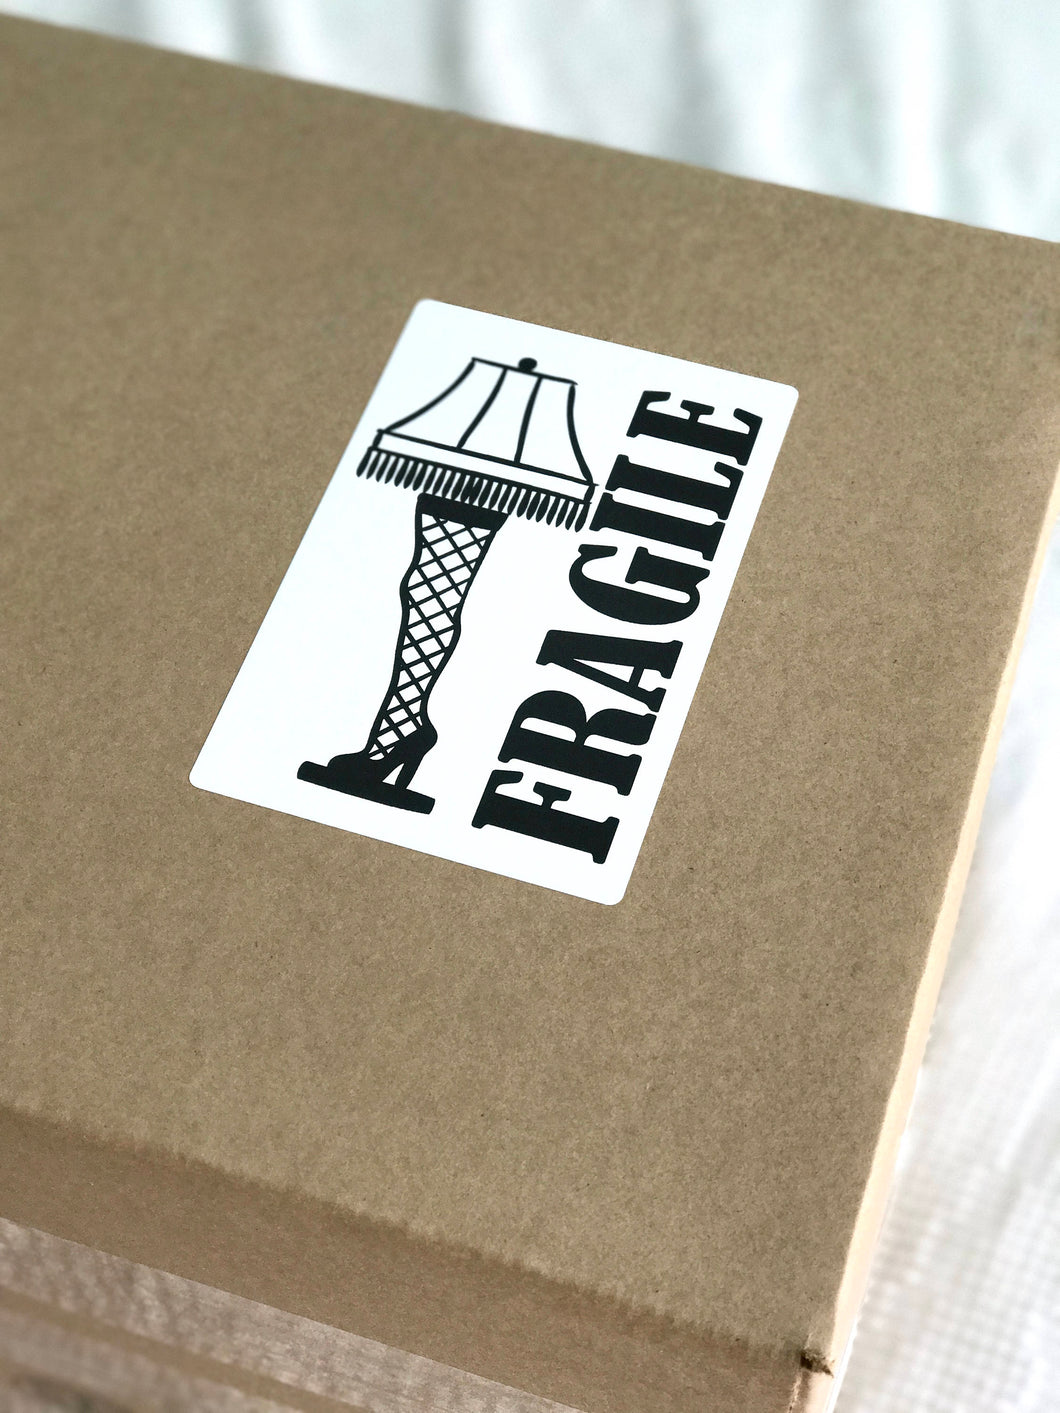 Download Leg Lamp Fragile Shipping Sticker Image. Handle With Care Sticker. Fragile Label. DIY Printable Packaging. Shipping Supplies.